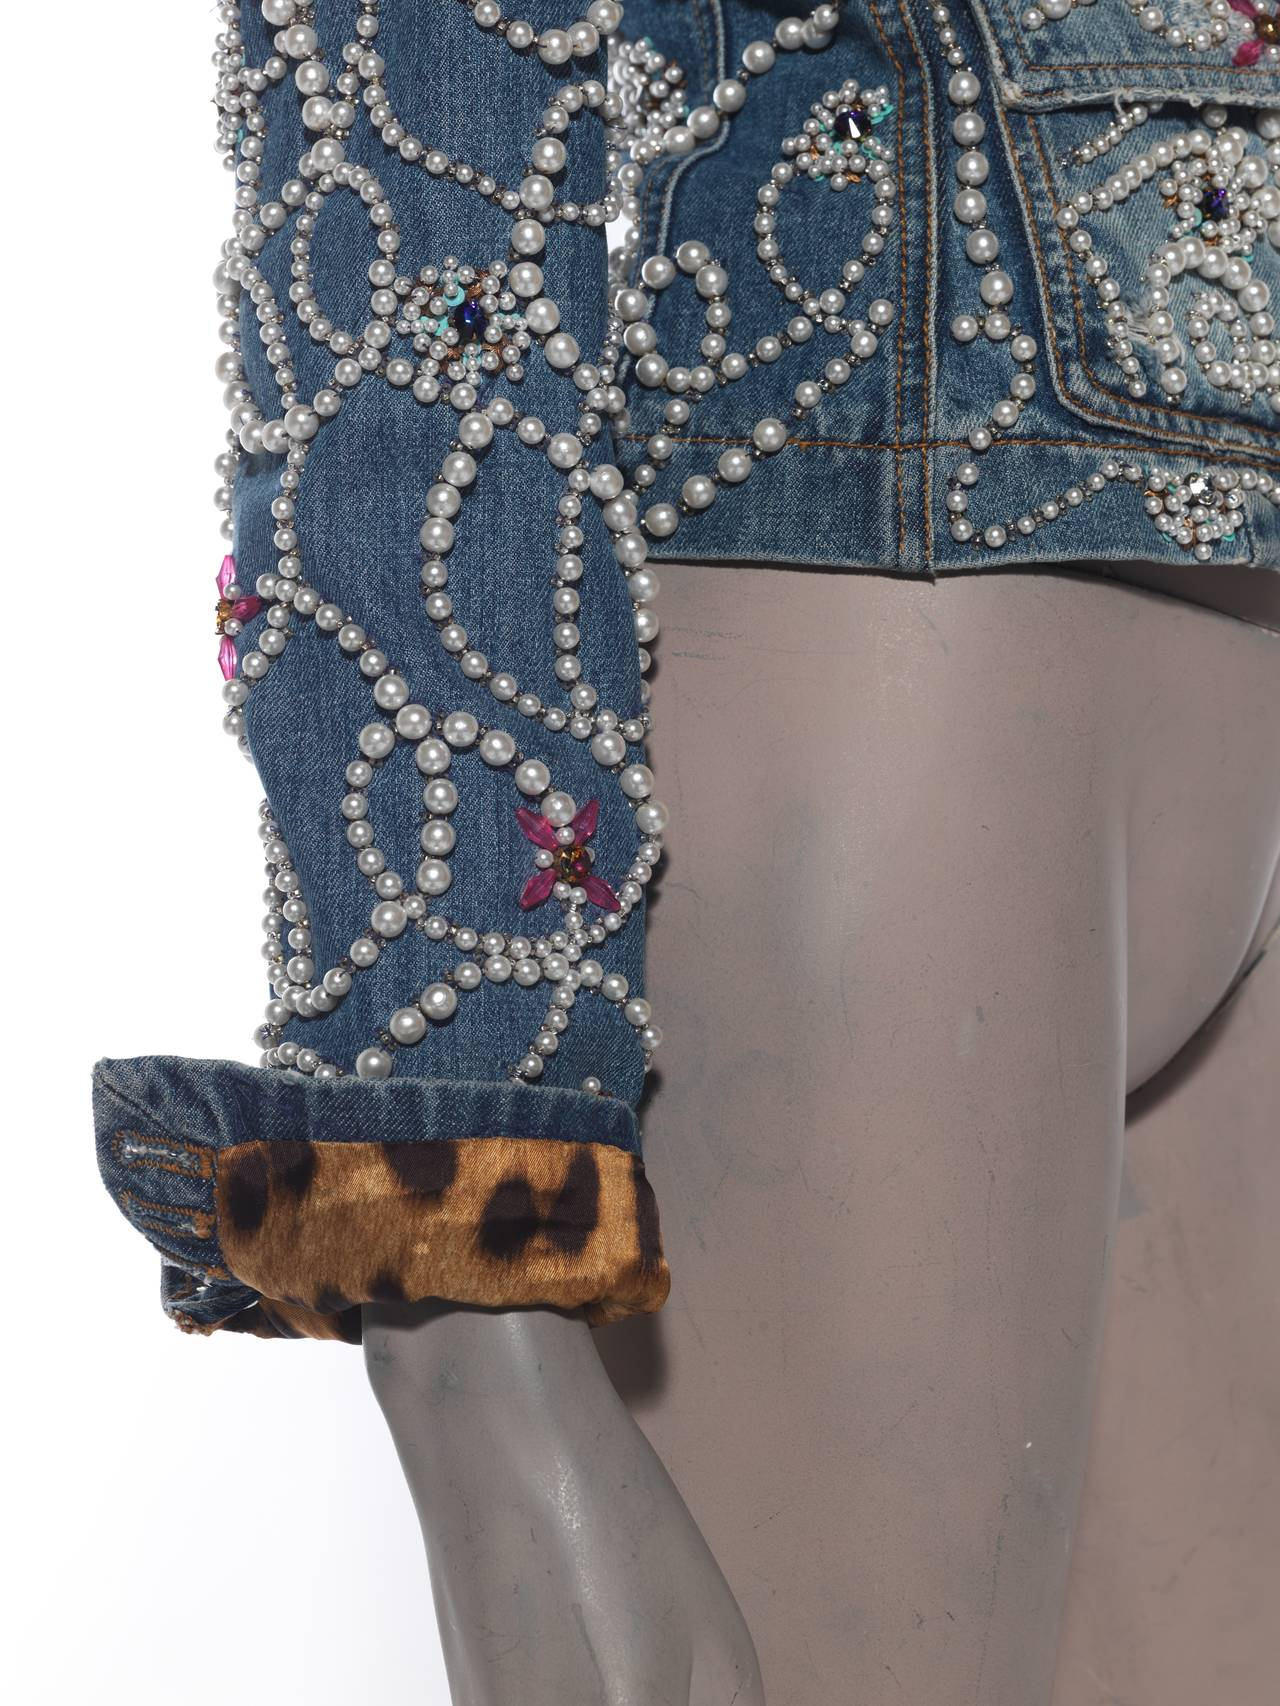 Dolce & Gabbana Pearl Encrusted Denim Jacket 5